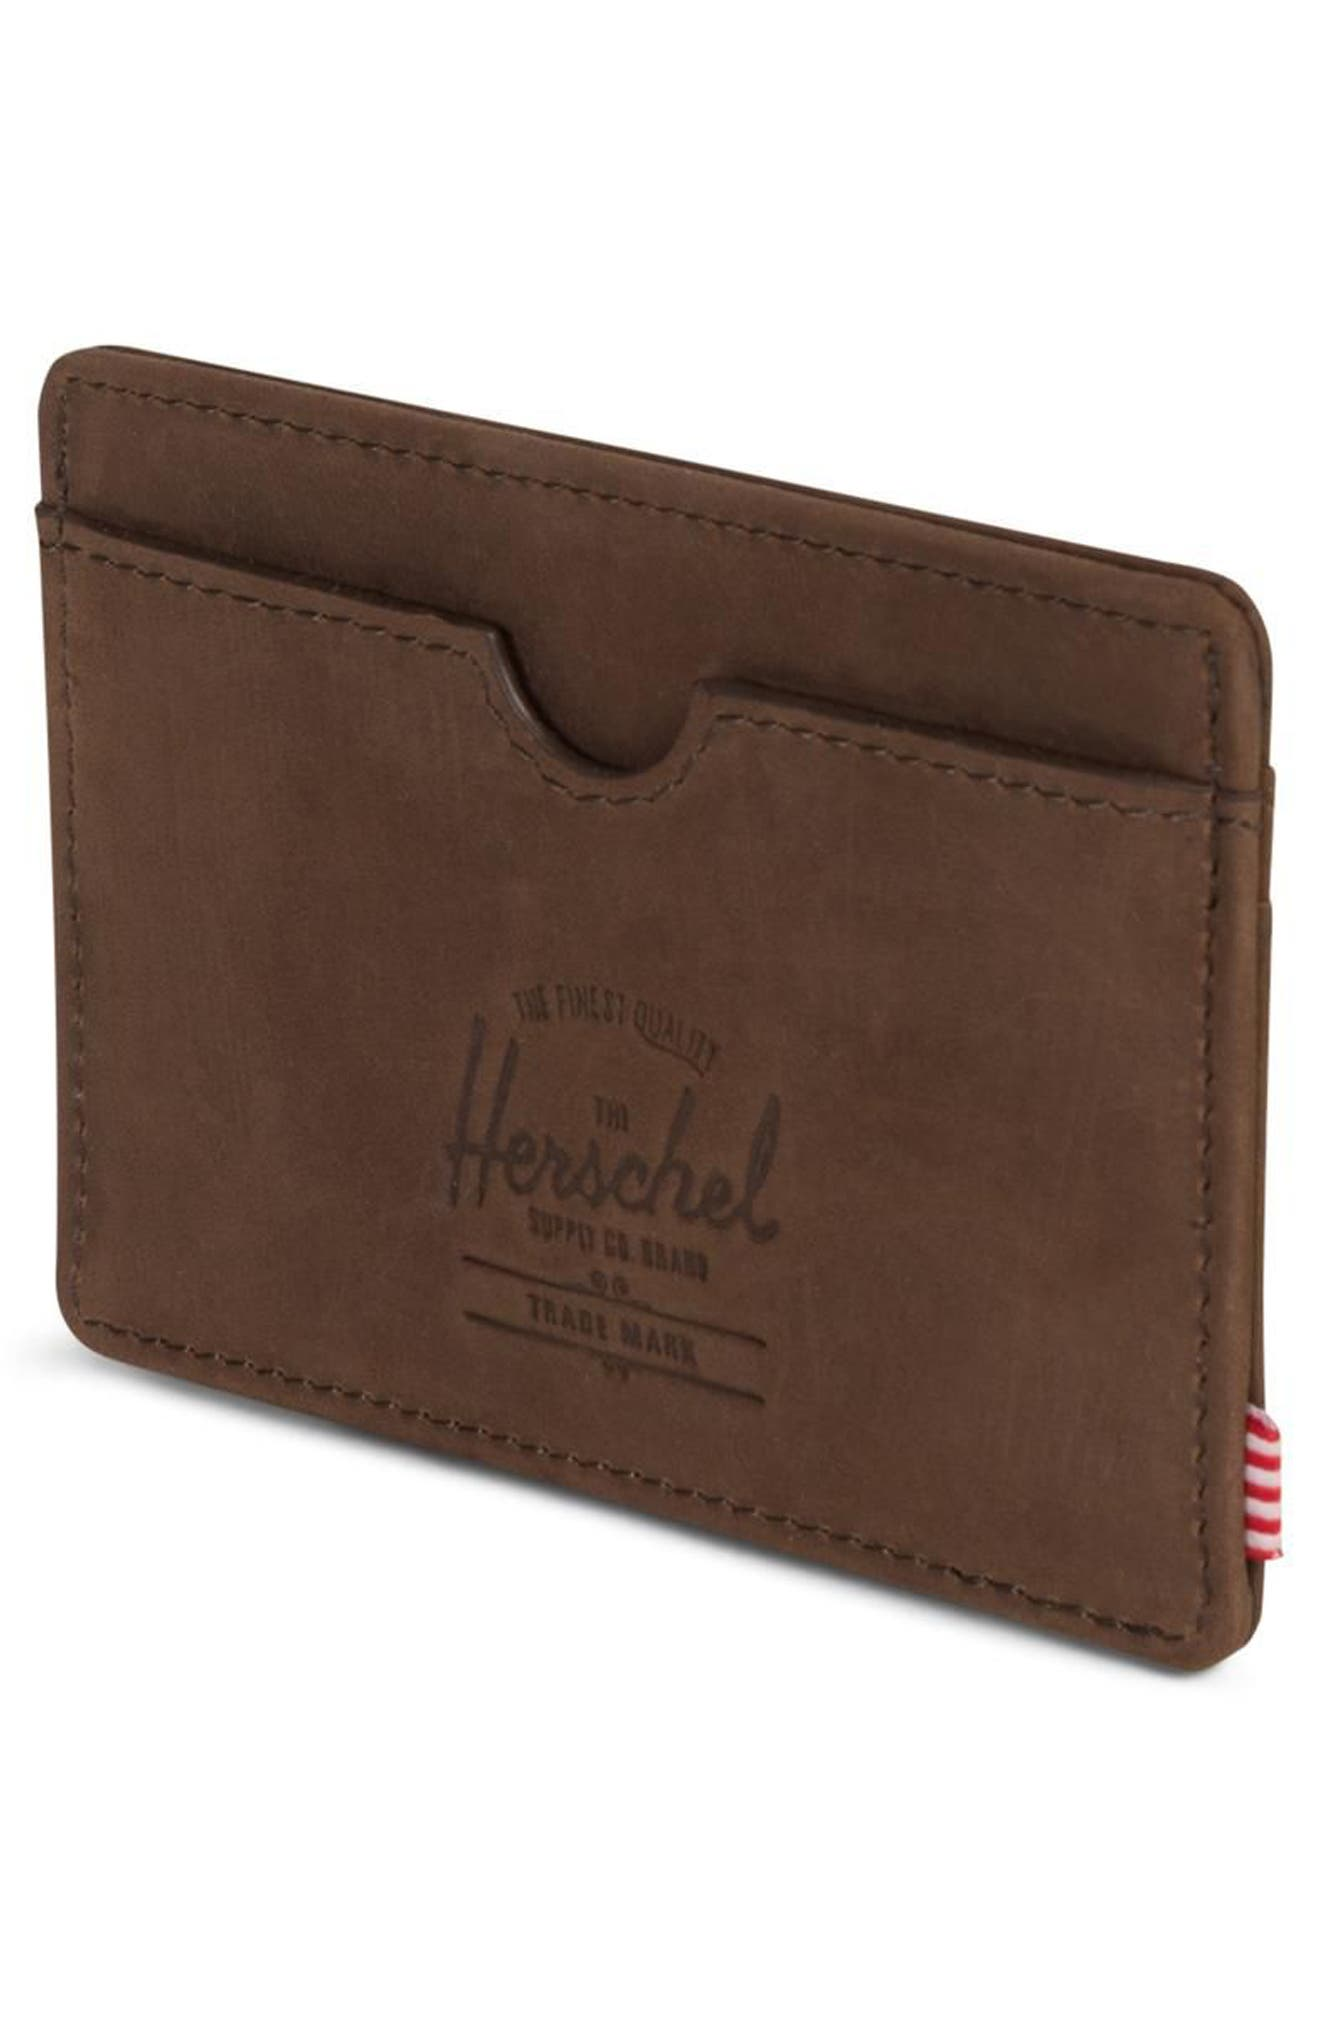 Charlie Nubuck Leather Card Case,                             Alternate thumbnail 4, color,                             NUBUCK BROWN